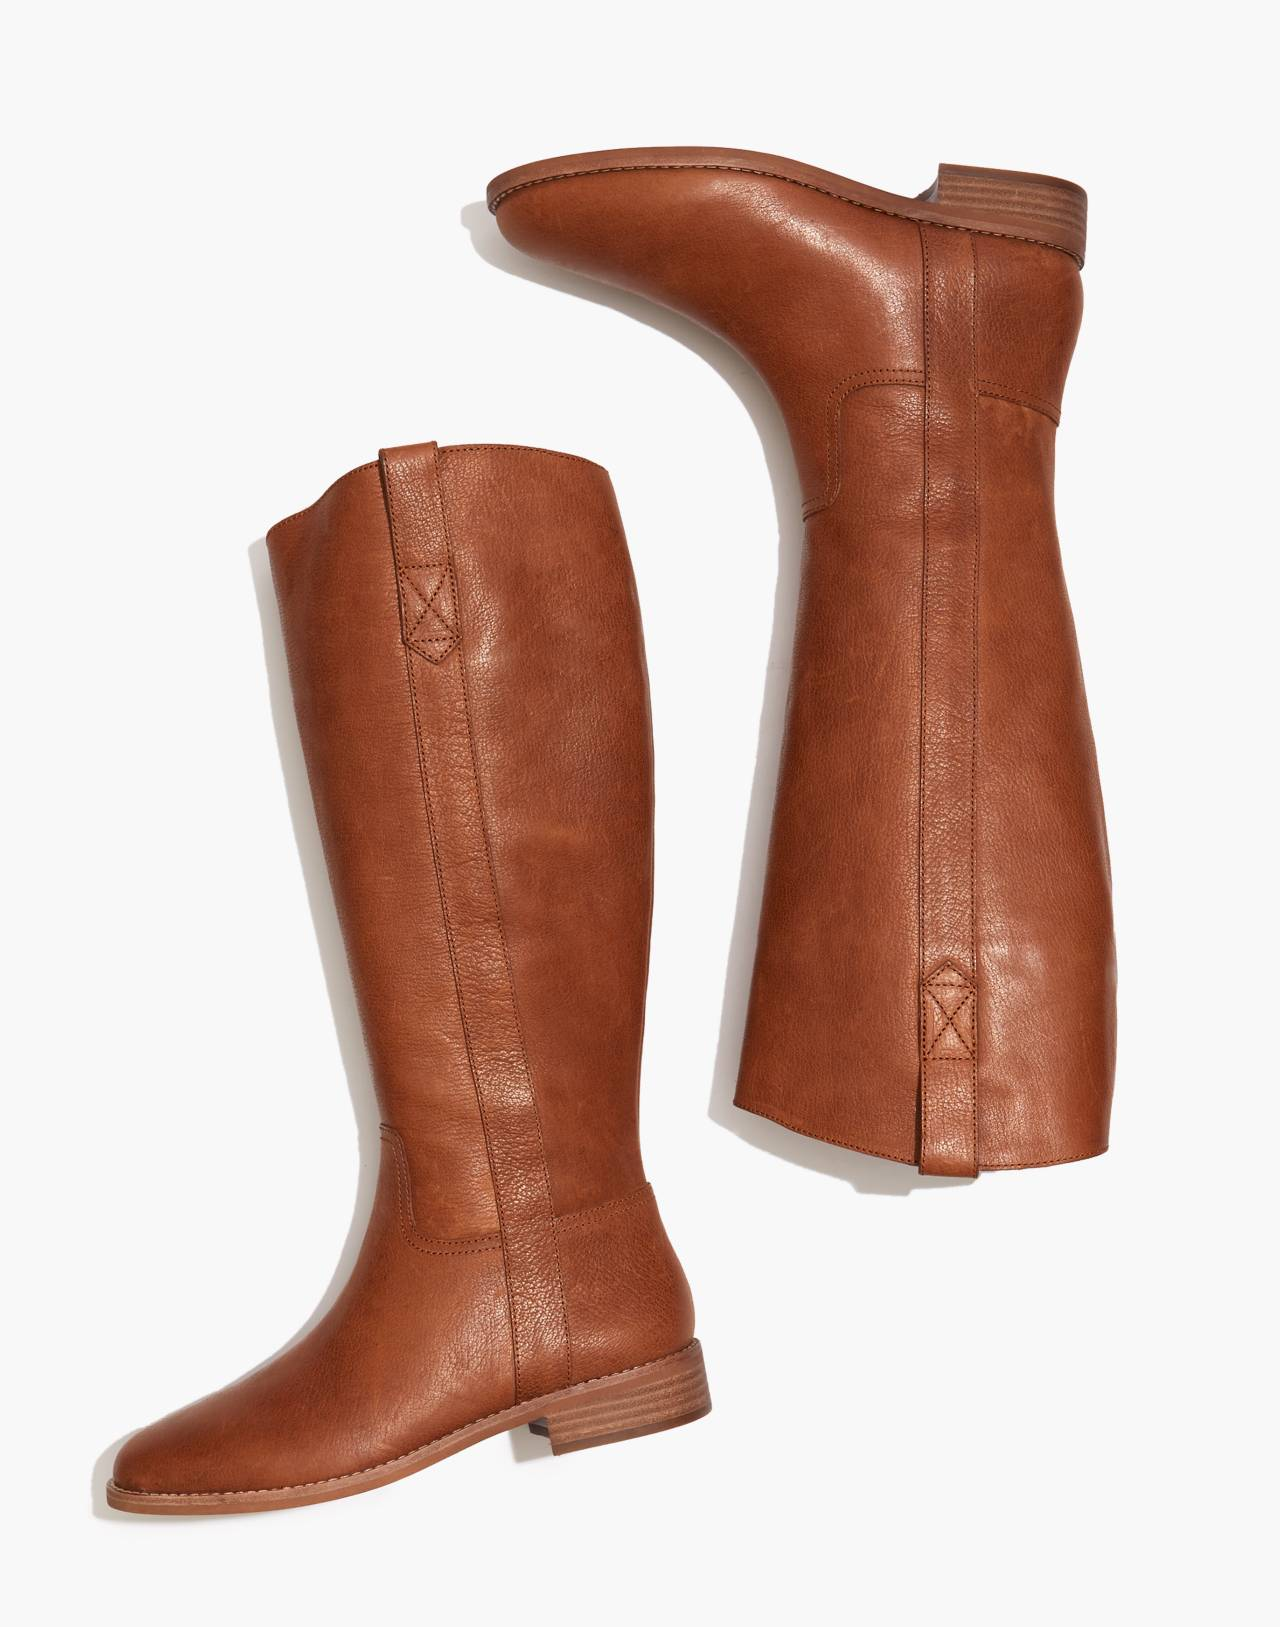 The Winslow Knee-High Boot with Extended Calf in english saddle image 1